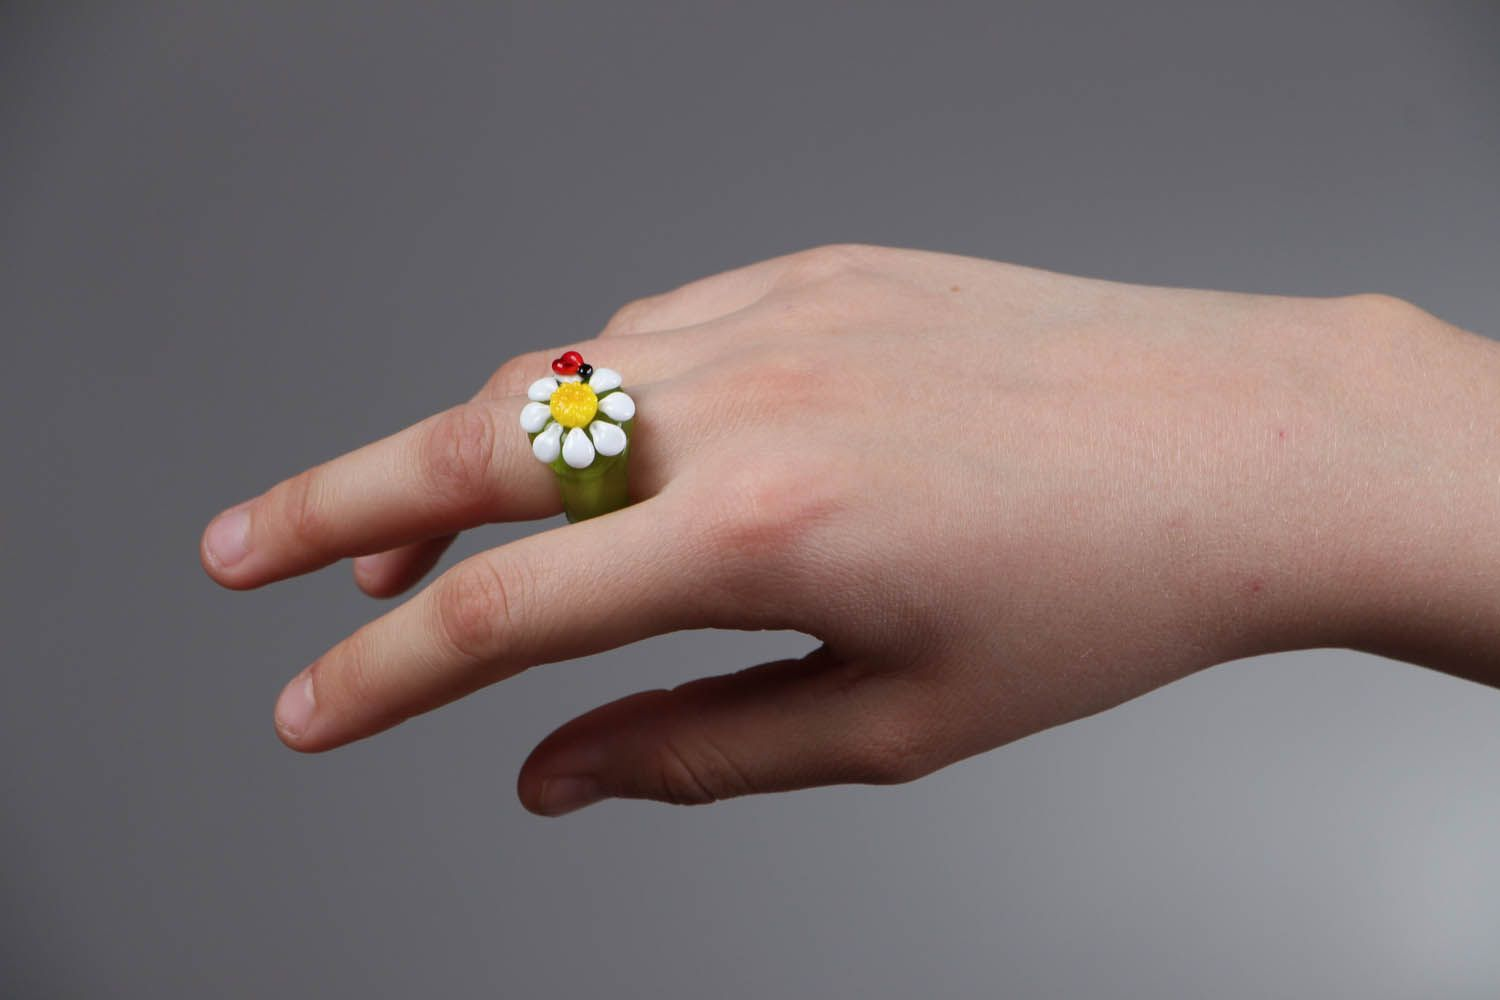 Homemade glass ring Daisy with Bug photo 4